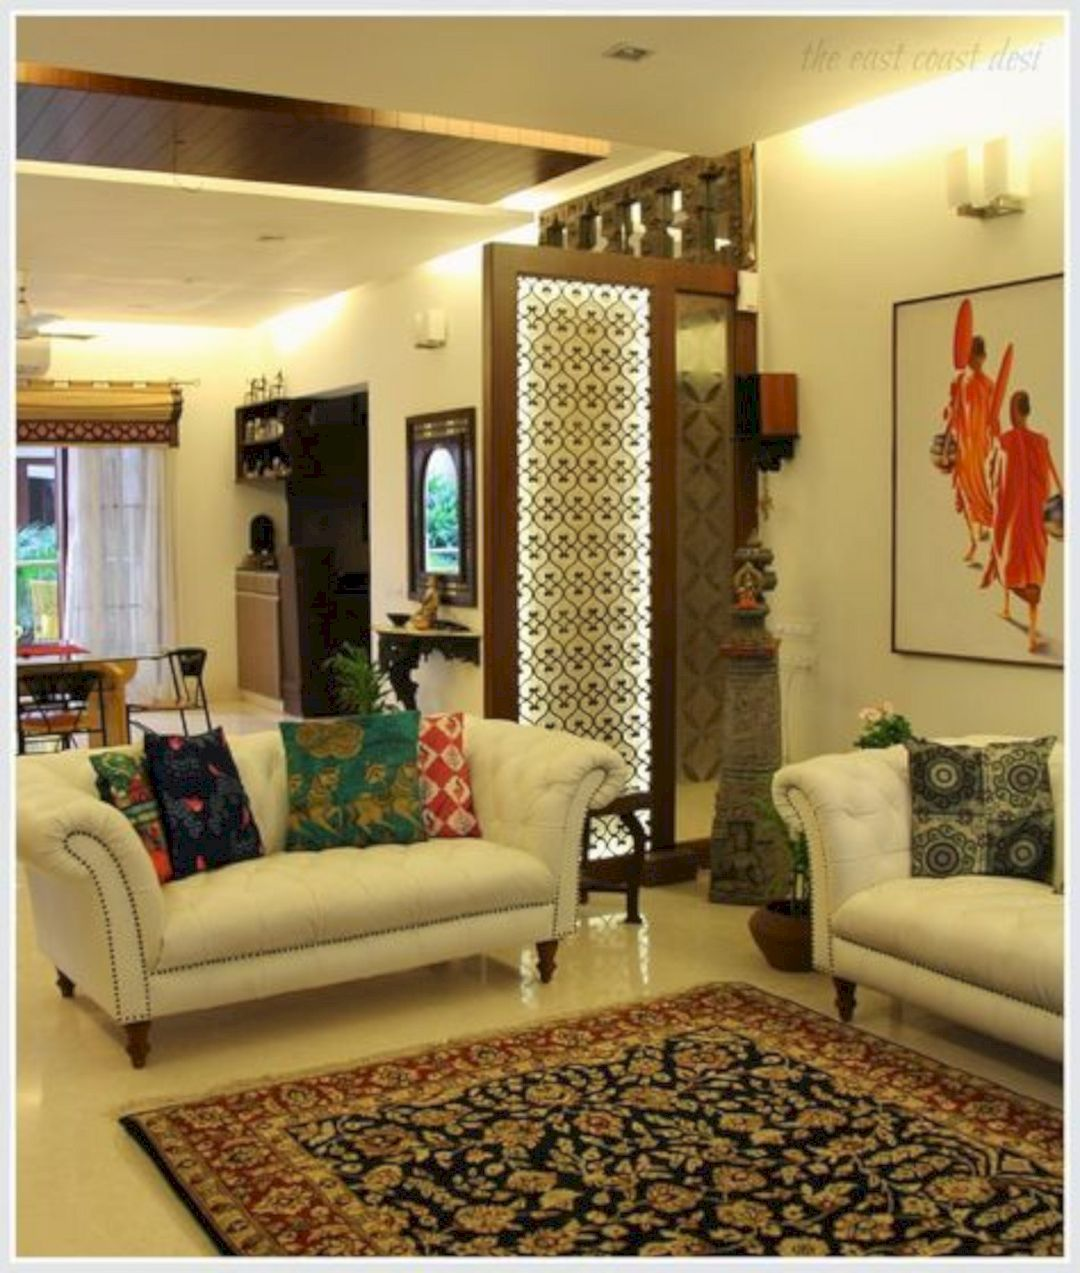 15 interior design ideas for indian style living room https www futuristarchitecture